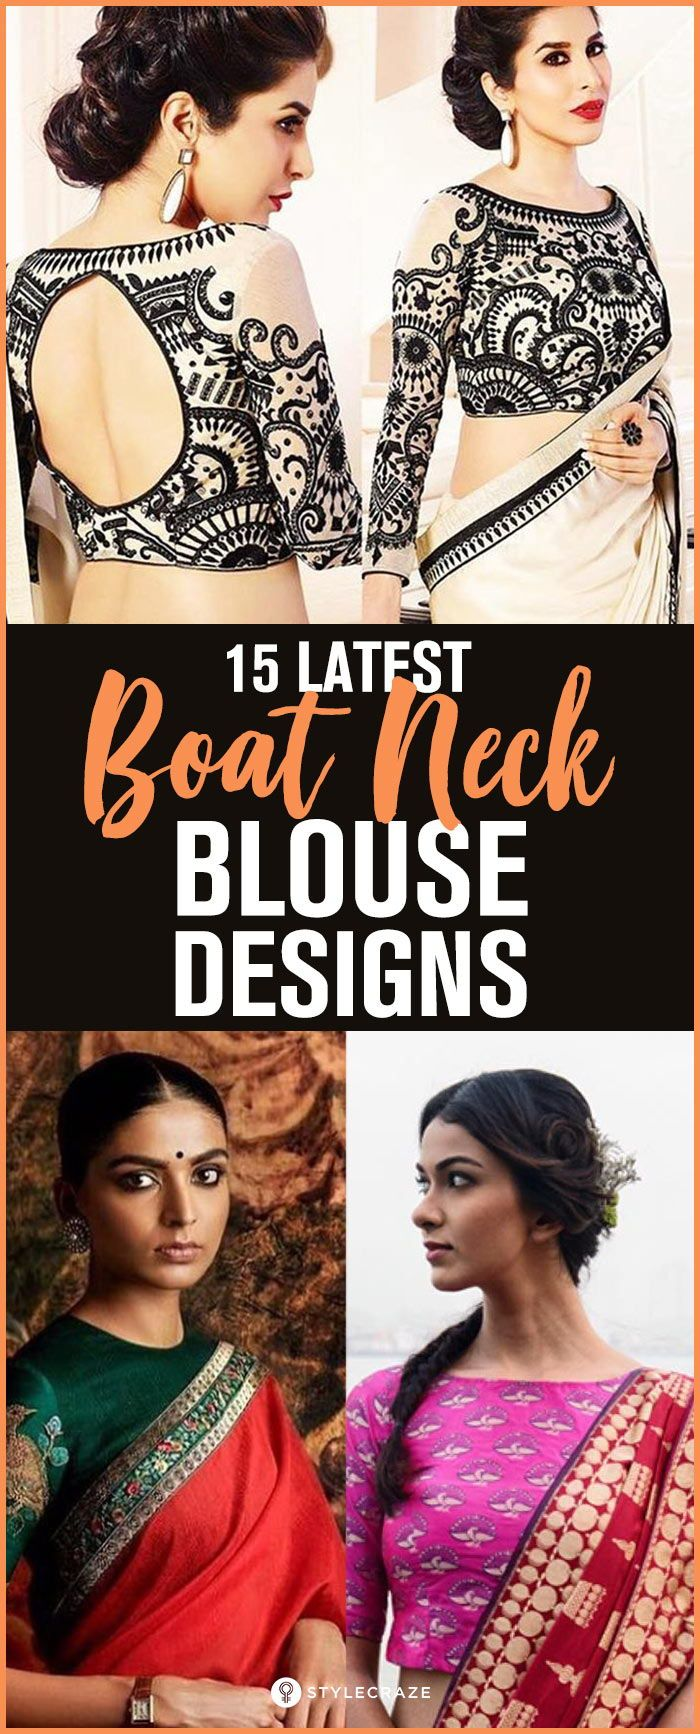 Communication on this topic: 15 Latest Boat Neck Blouse Designs, 15-latest-boat-neck-blouse-designs/